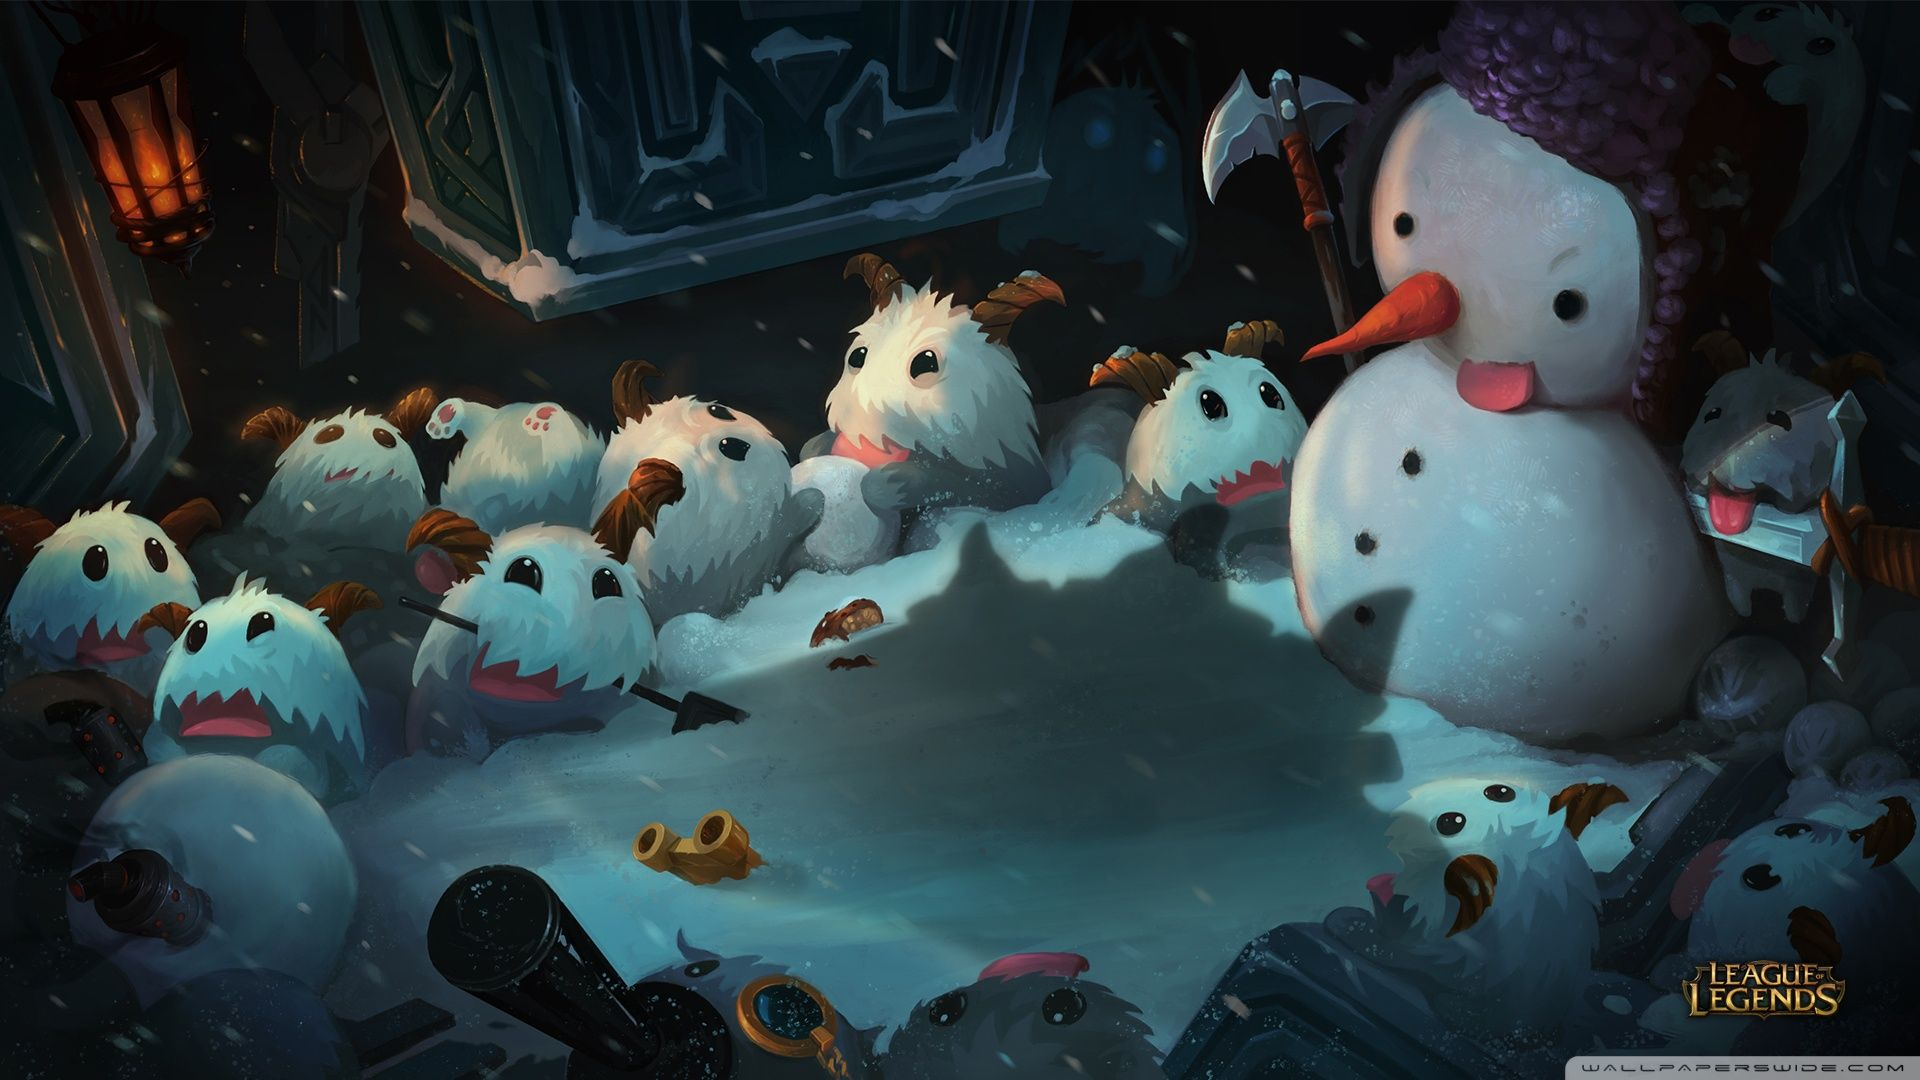 Pin By Tim Moore On Christmas Wallpaper League Of Legends